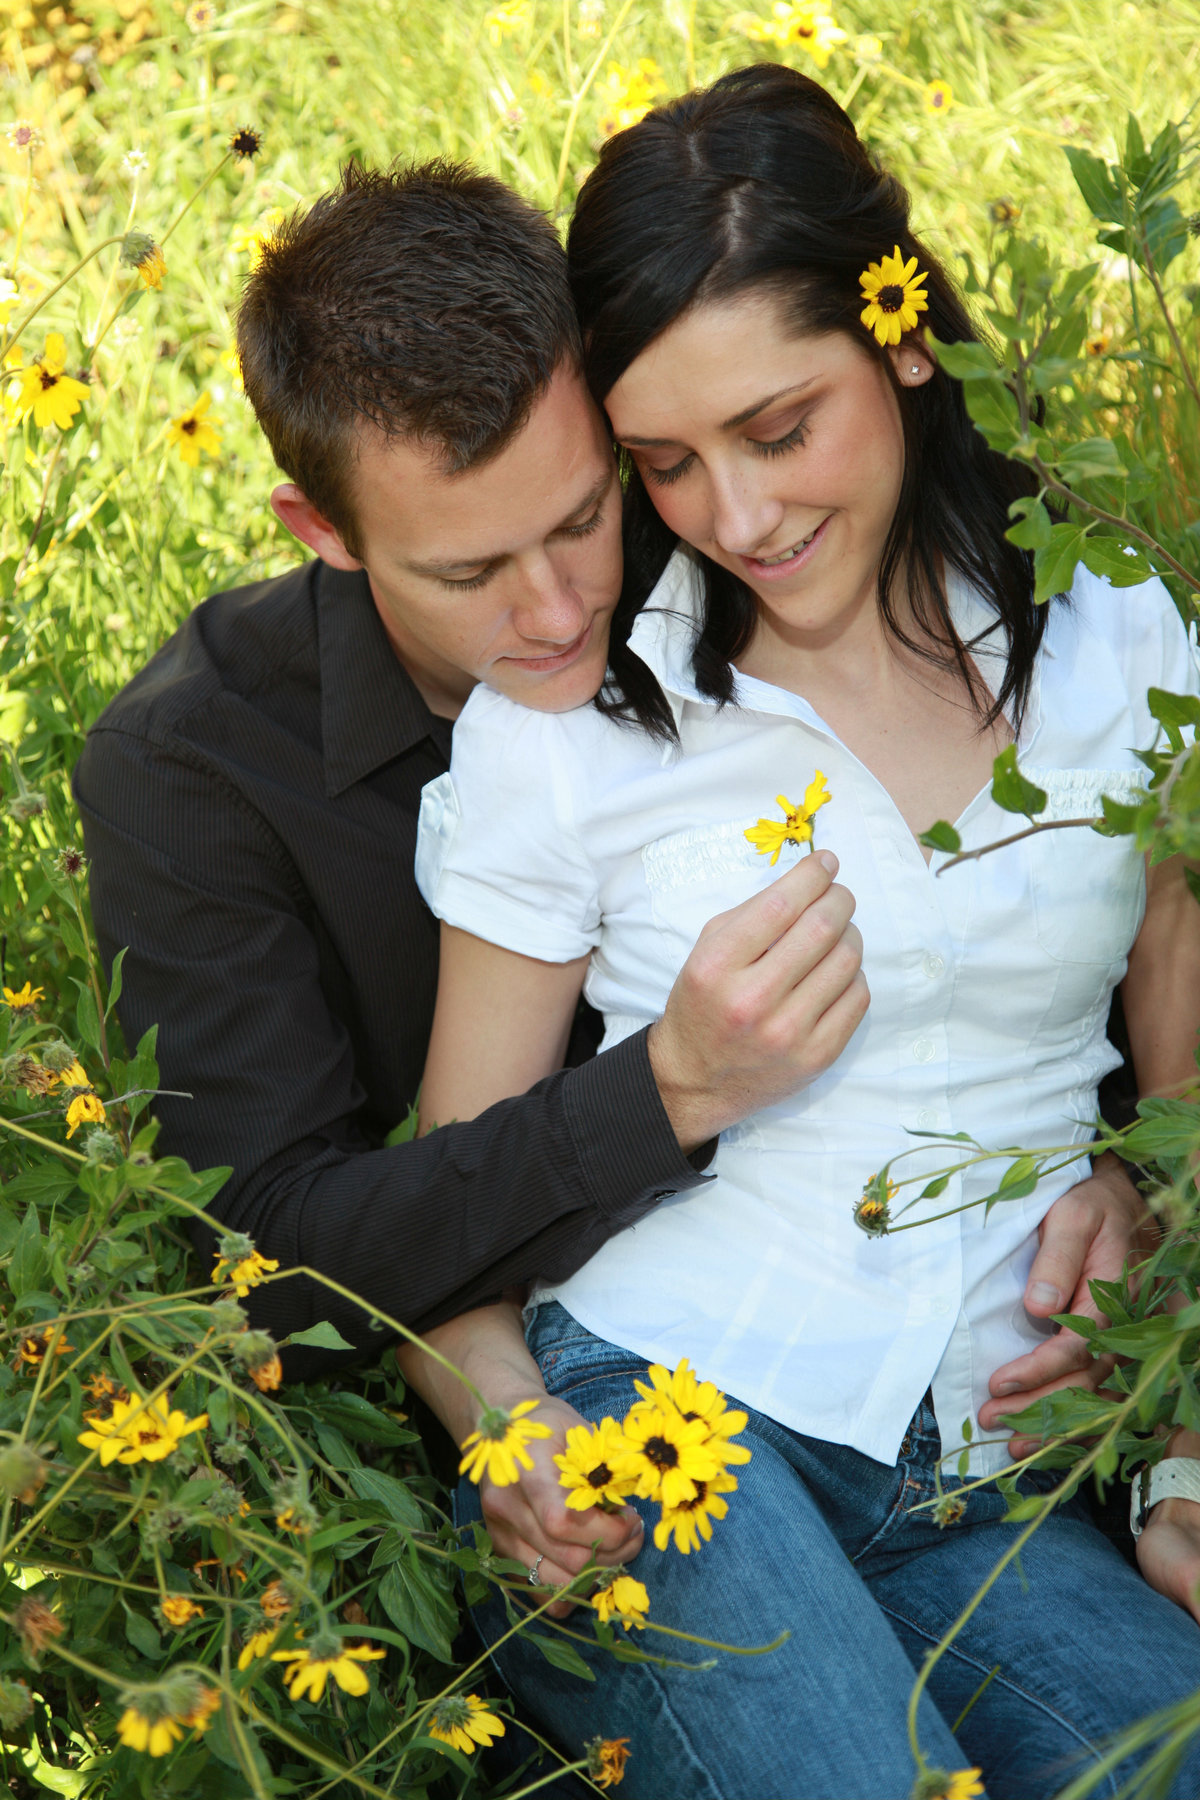 Engagement photos by Kassel Photography. Weddings,events,models,portraits and family photography. Located in Orange County,California. Private studio with over 16 years experience. Professional,fast,fun and creative. Kassel